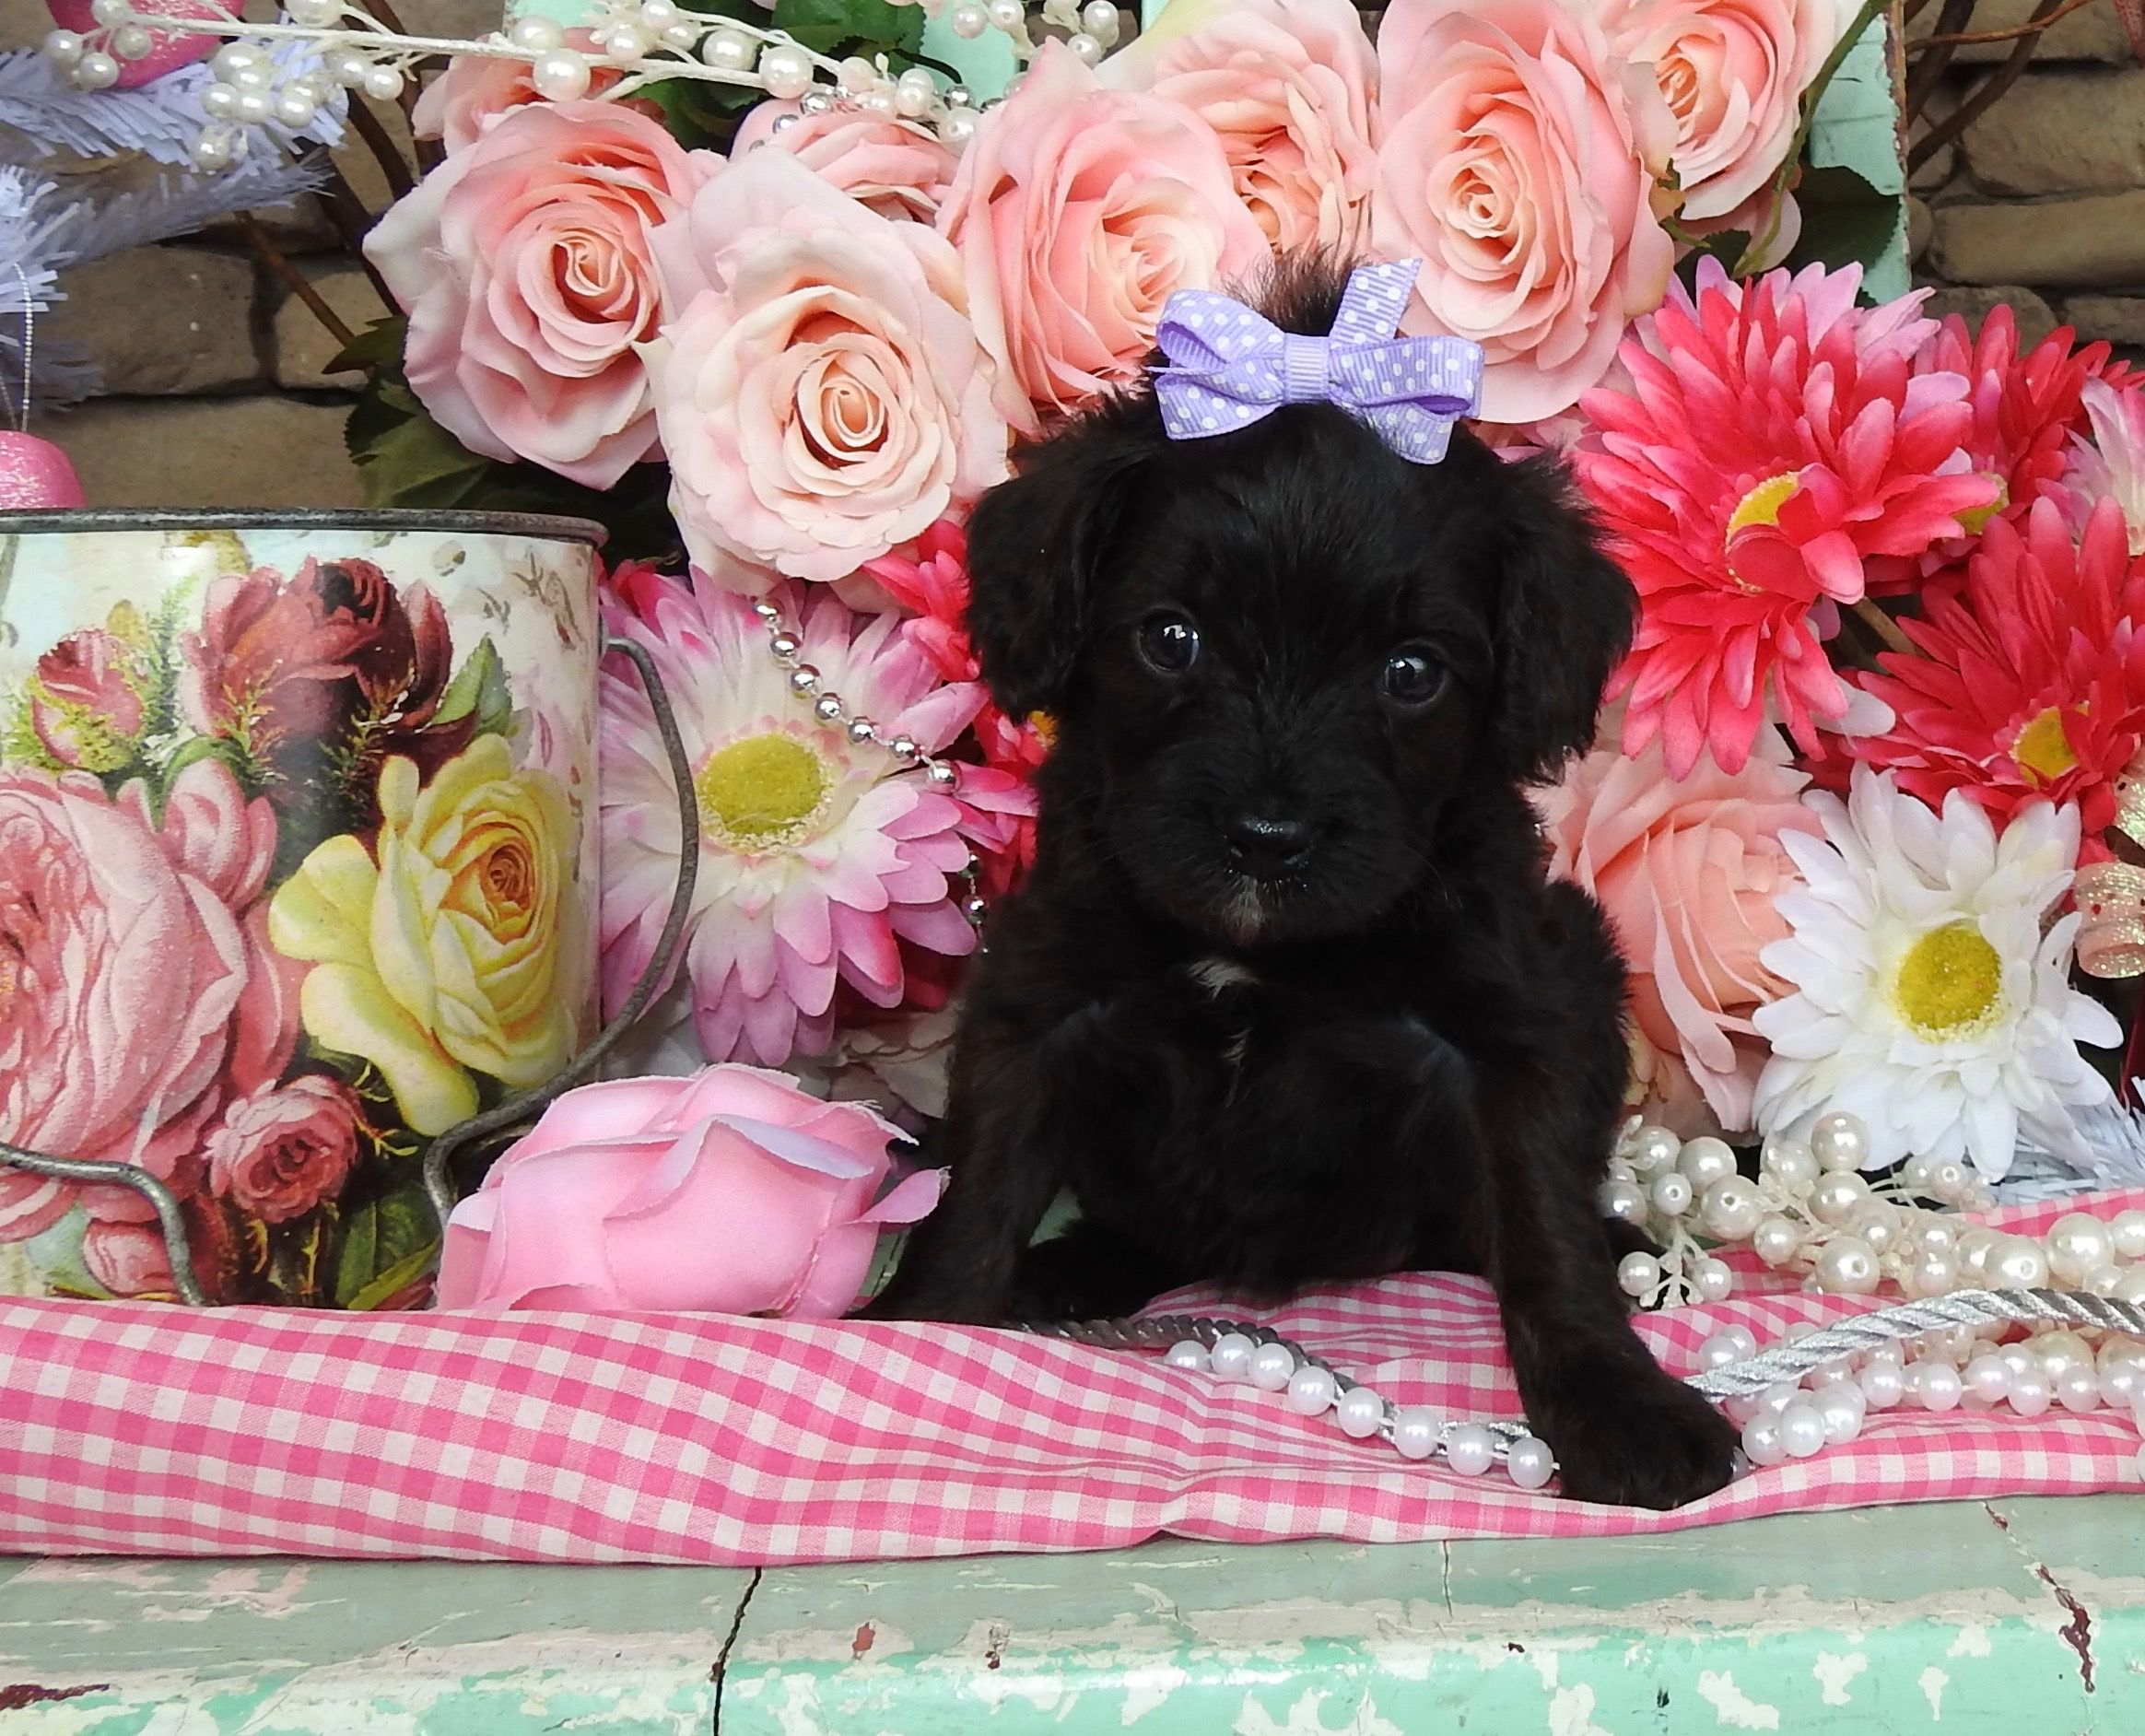 Shichon puppies for sale in indiana - Cavapoo Puppies For Sale Cavapoo Cavapoos Cavapoo Dog Cavapoo Pups Cavapoo